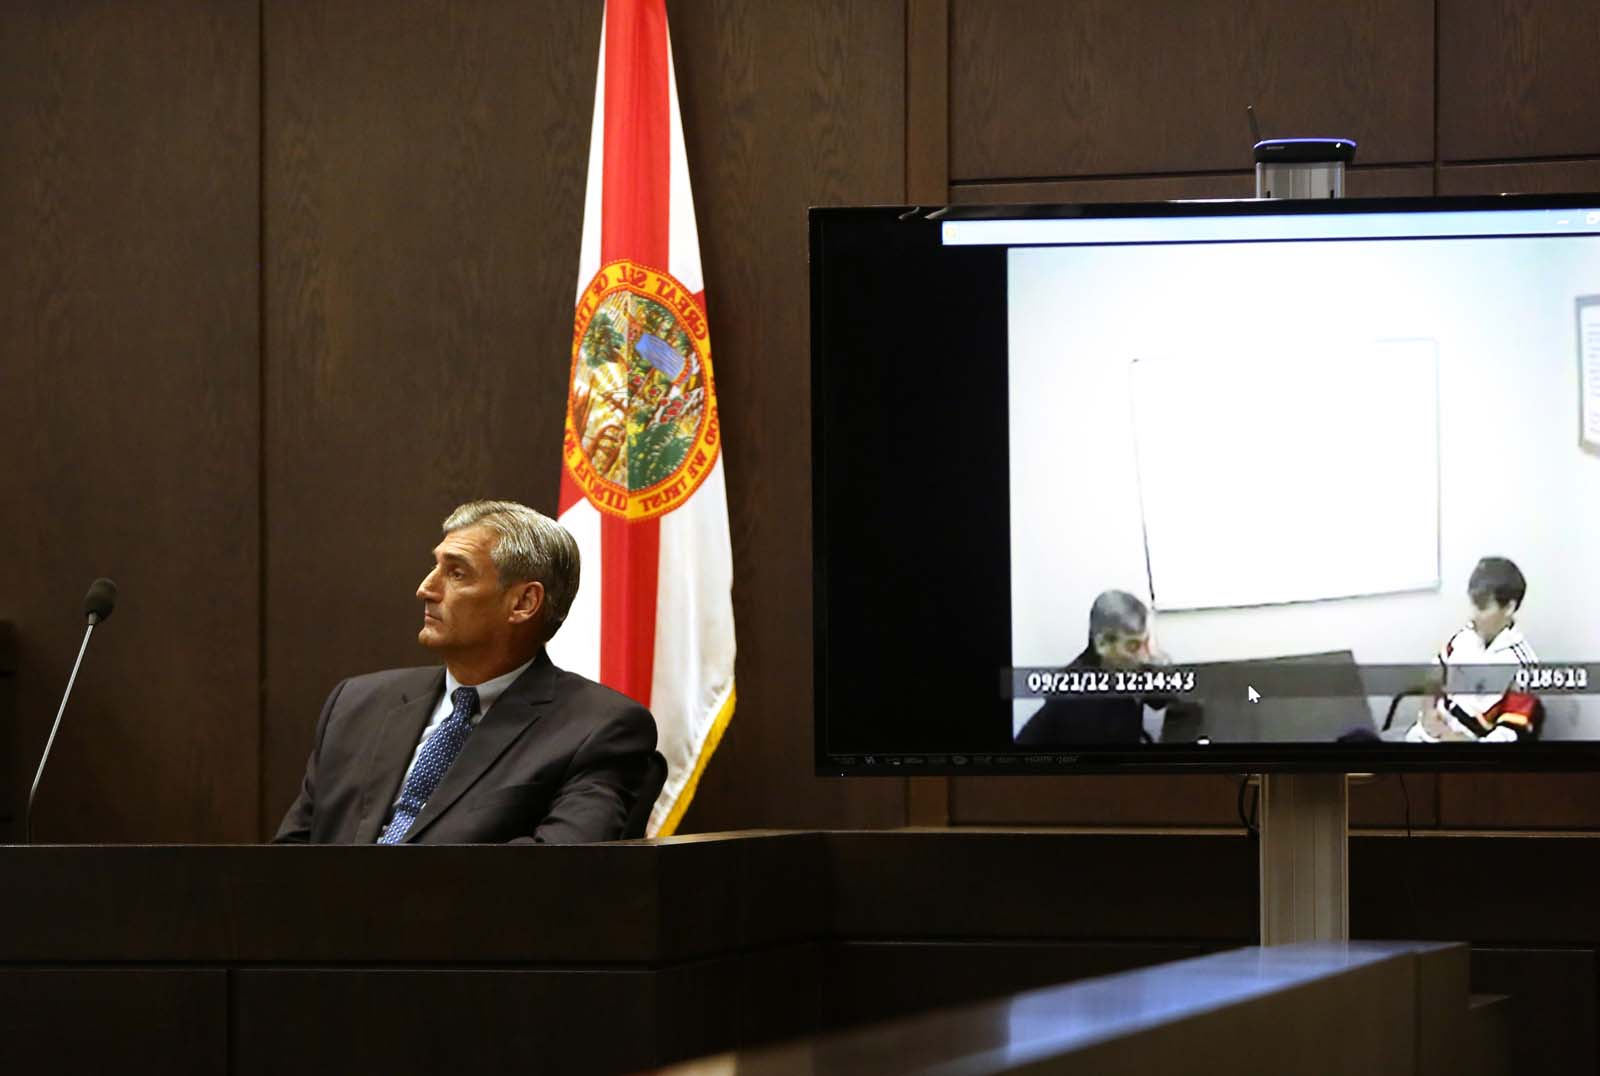 University Police Sgt. Steven Wilder views his September 21, 2012 interview with Pedro Bravo during Bravo's murder trial in courtroom 1B of the Alachua County Criminal Justice Center Monday, August 11, 2014.  Bravo is accused of killing University of Florida student Christian Aguilar.  (Doug Finger/The Gainesville Sun/Pool)